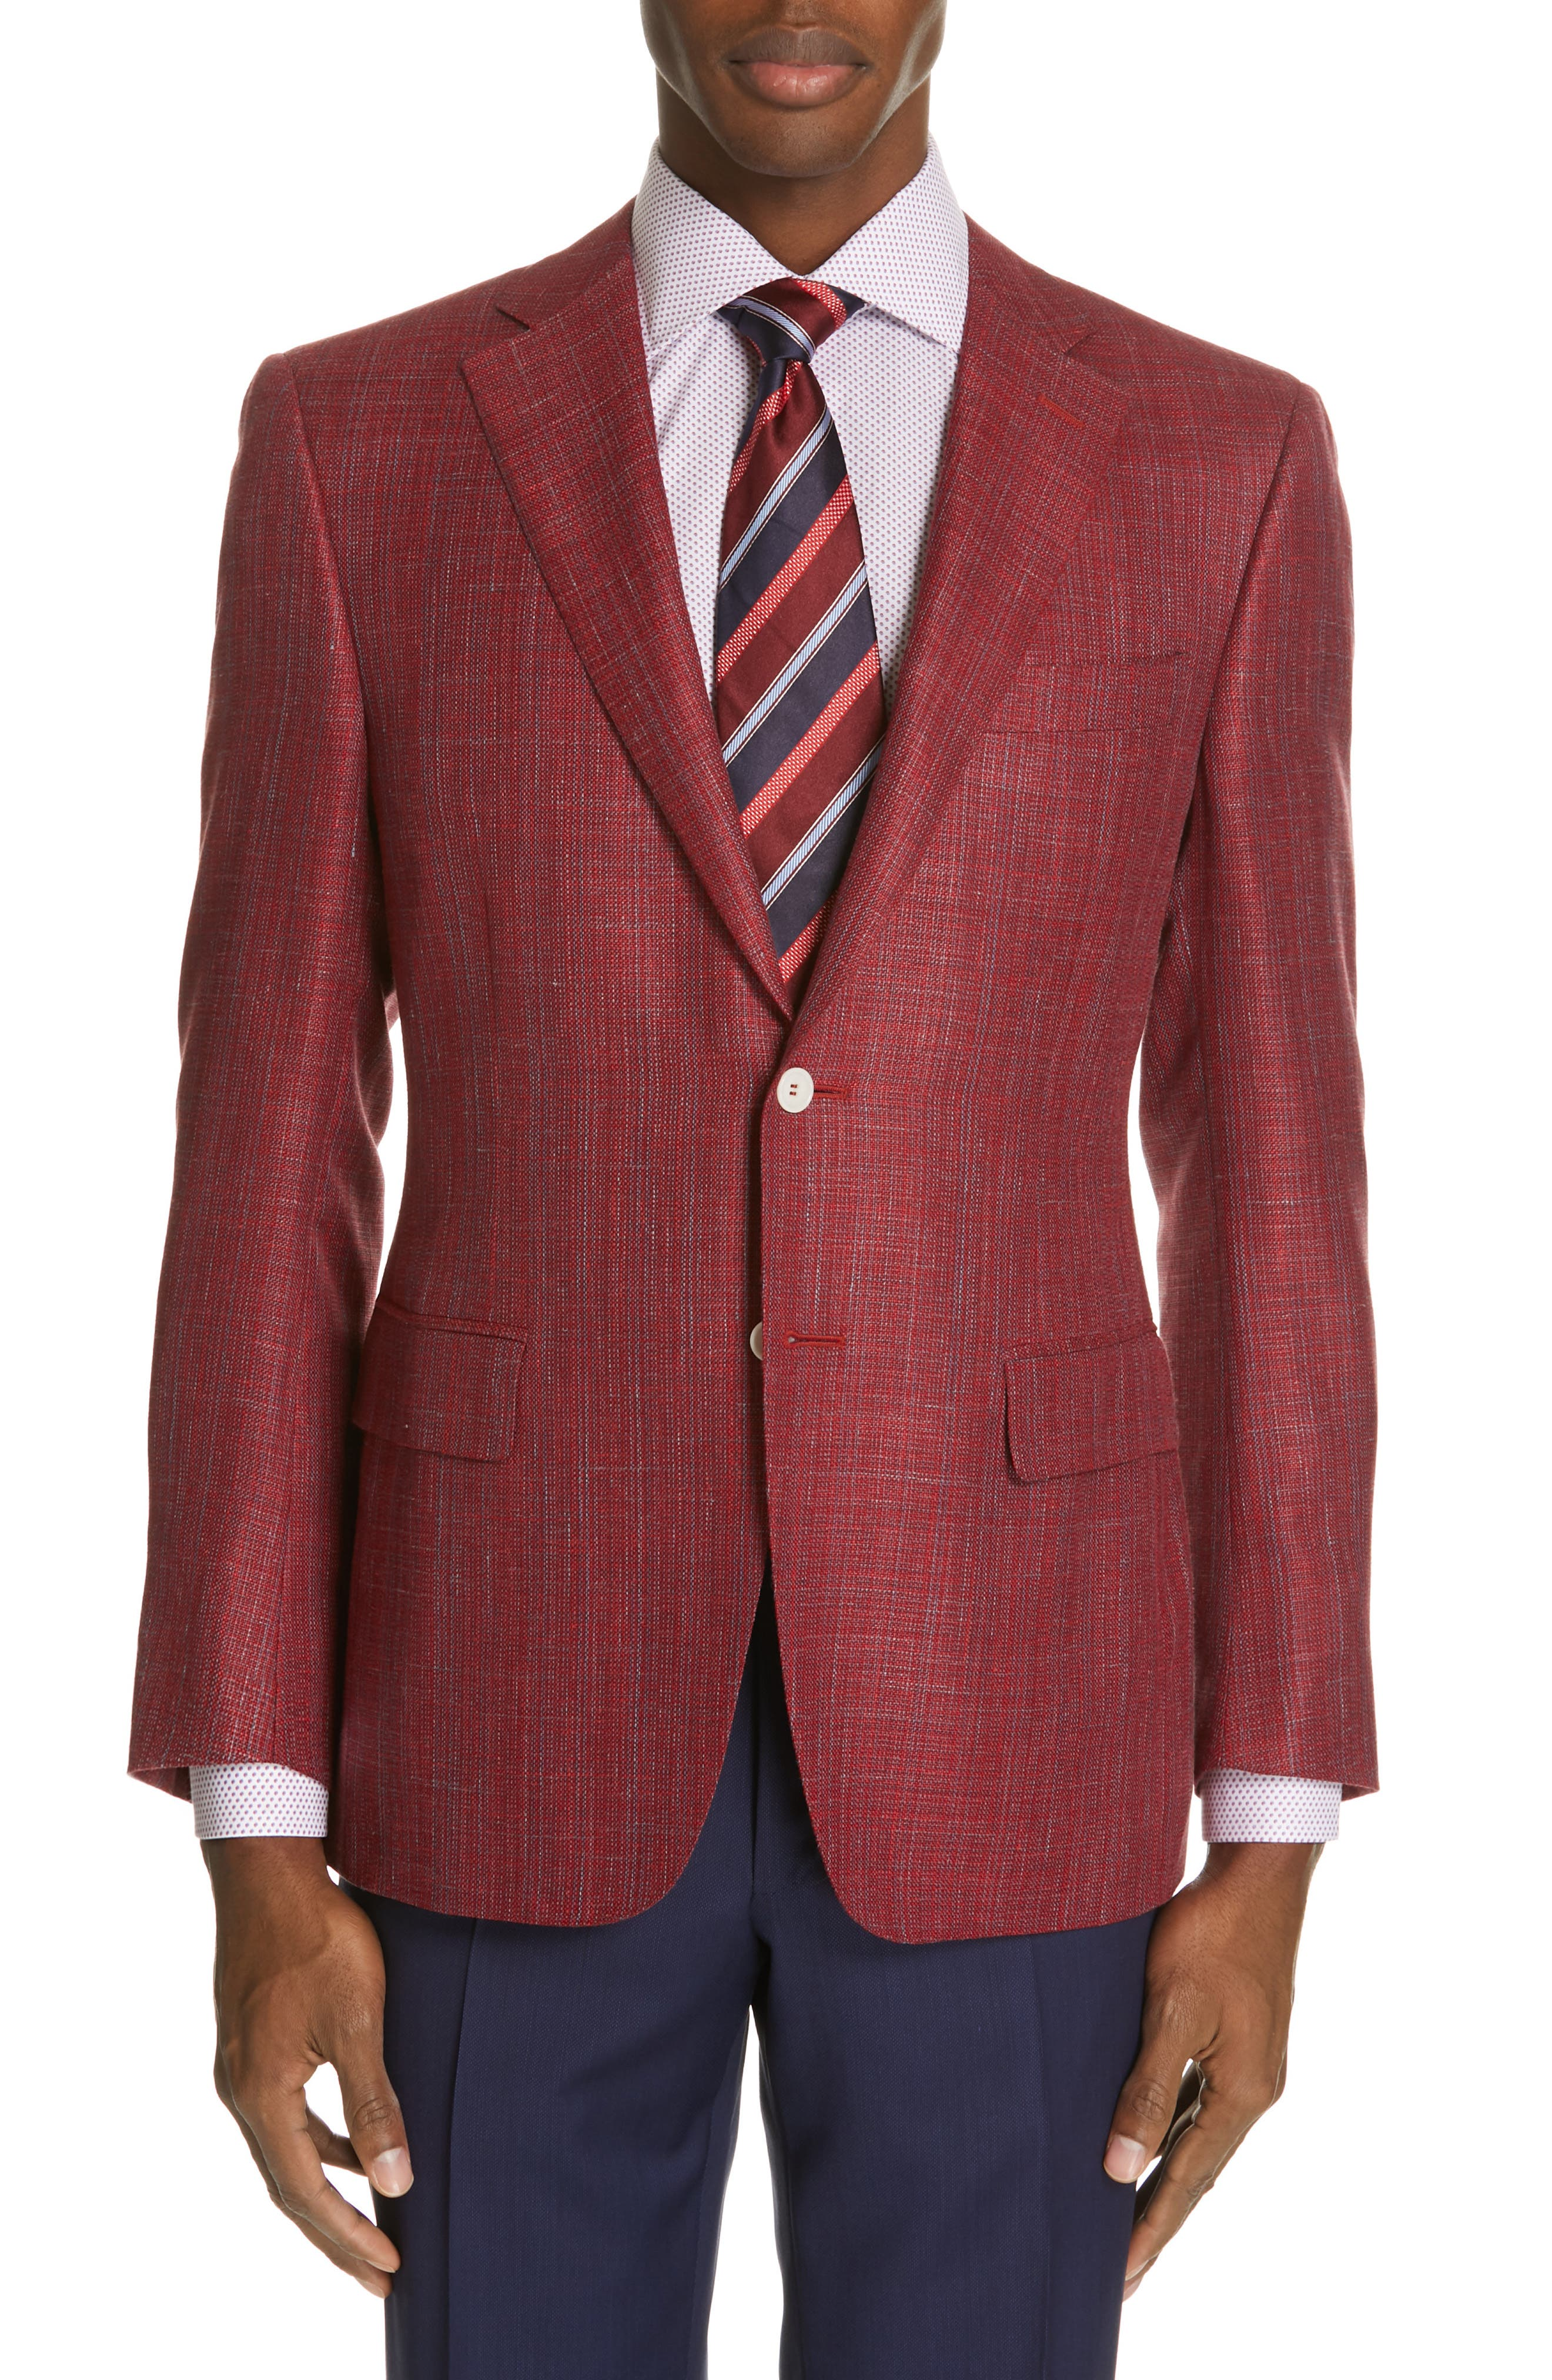 CANALI Siena Classic Fit Wool, Silk & Linen Blend Sport Coat, Main, color, RED